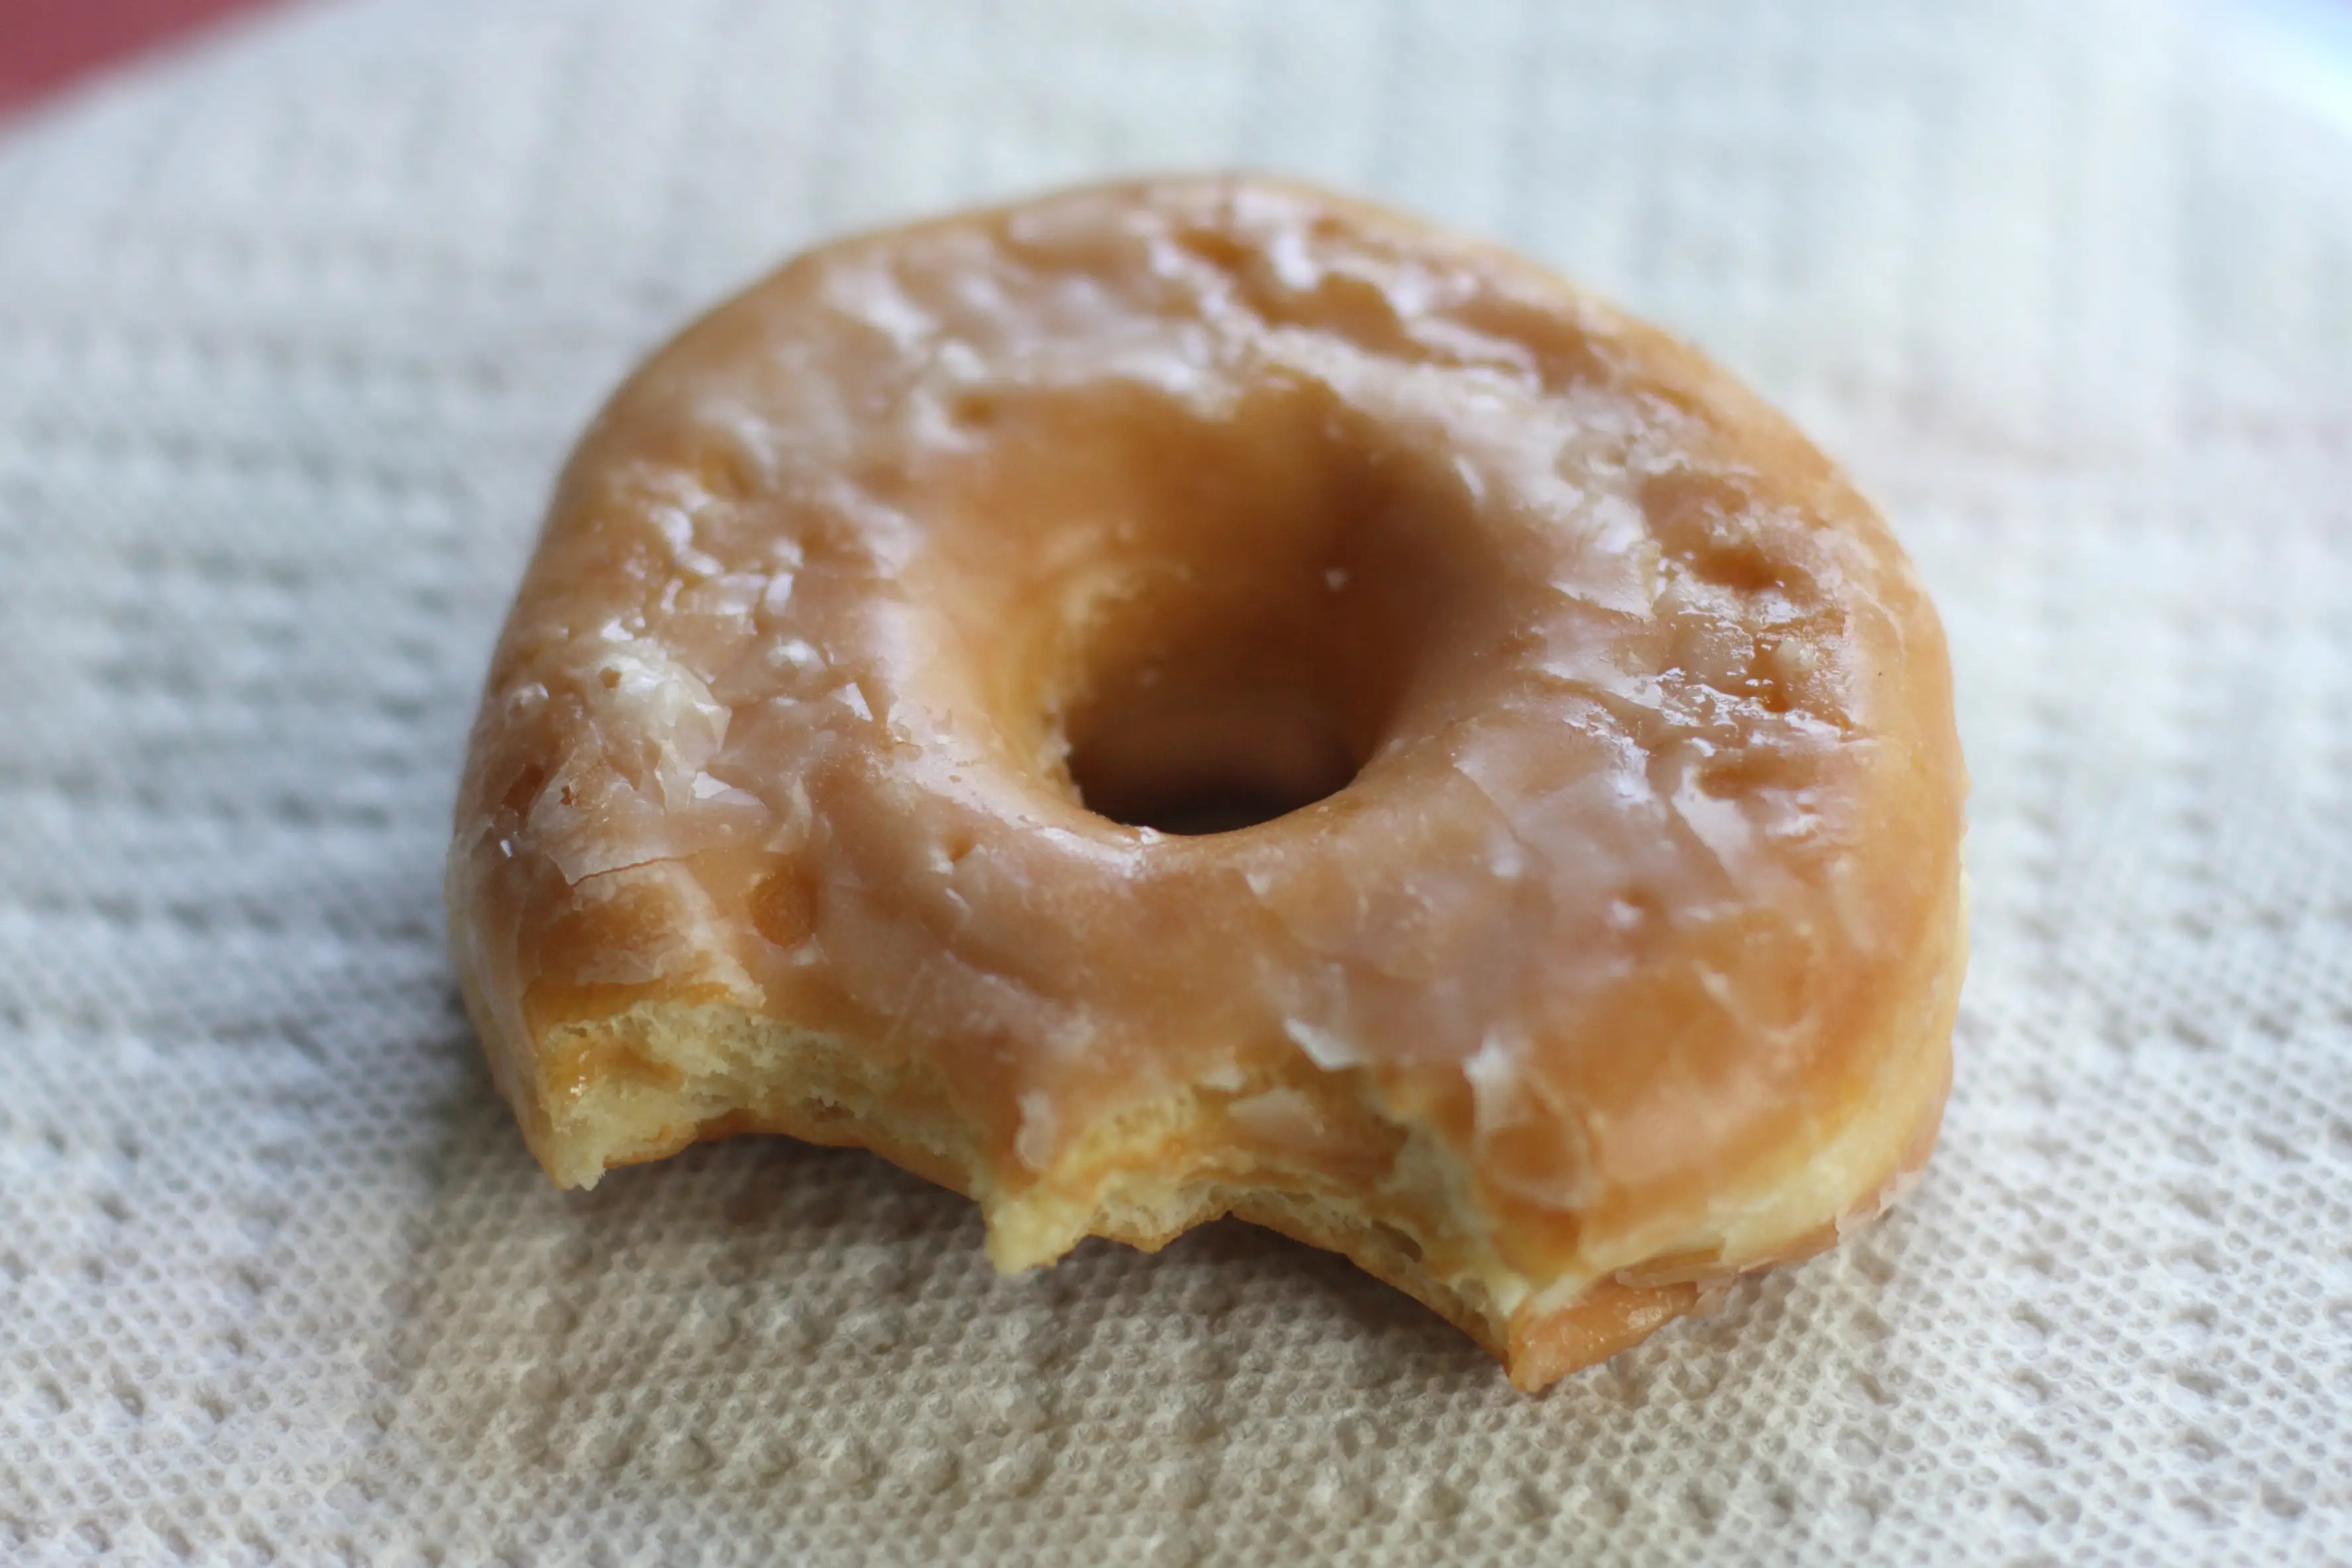 NORTH CAROLINA: Treat yourself to a hot glazed Krispy Kreme donut from the original shop in Winston-Salem.